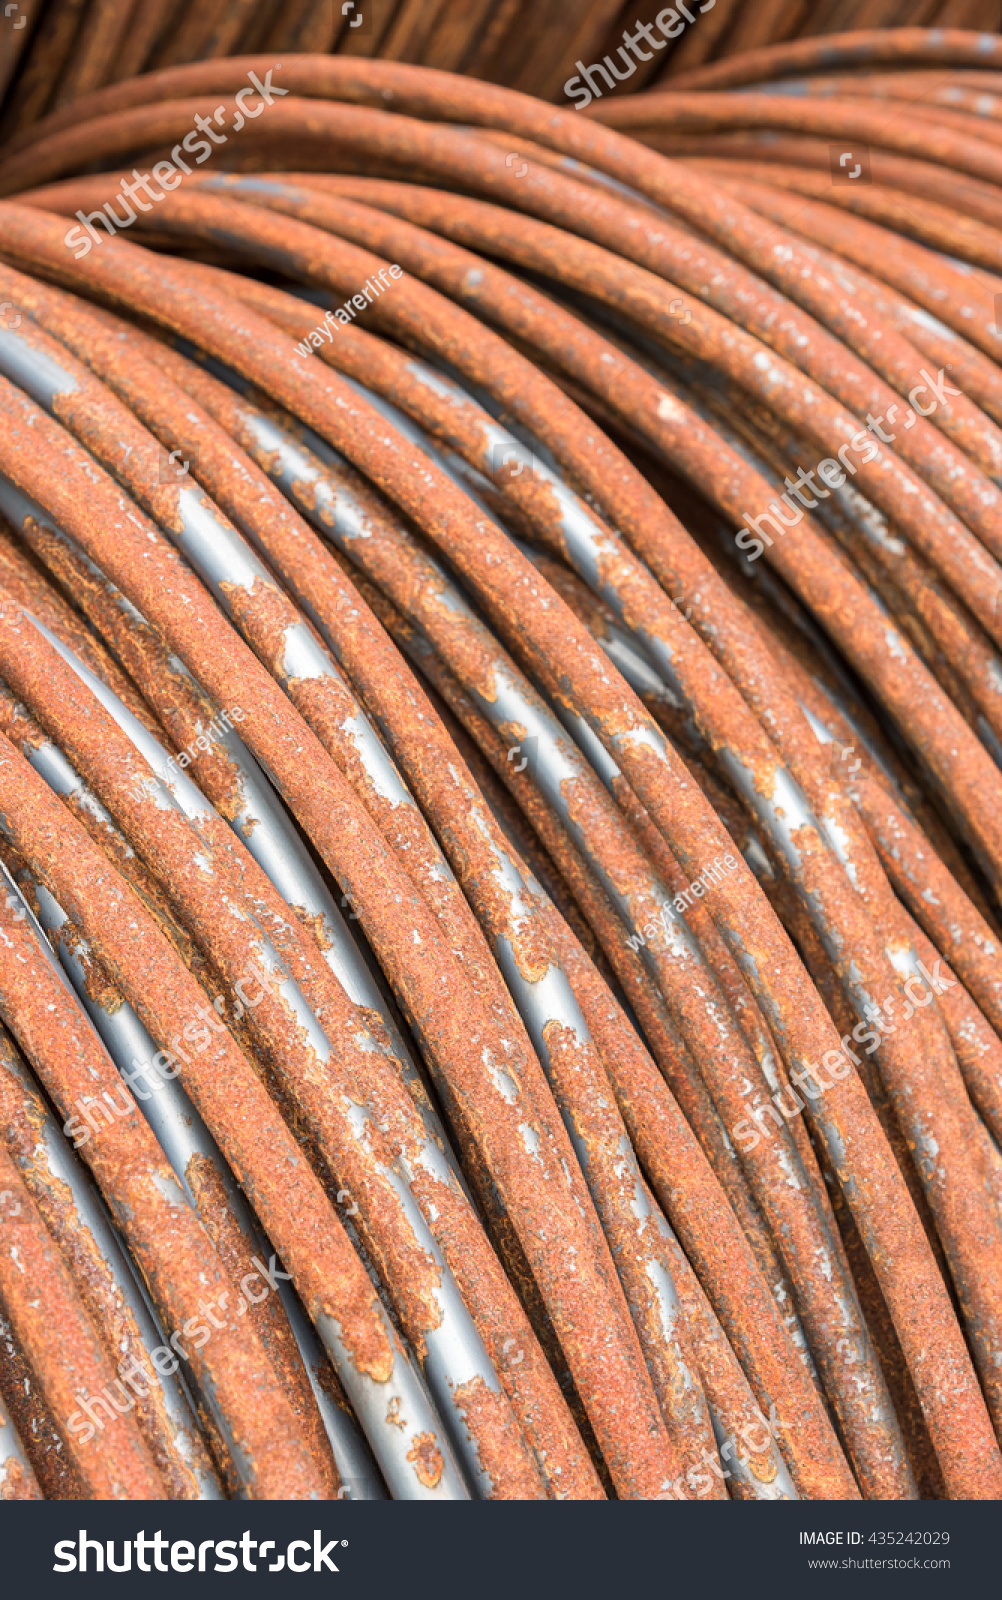 Close Rust Aluminum Wire Rod Industrial Stock Photo Edit Now Copper To Wiring Up For Construction